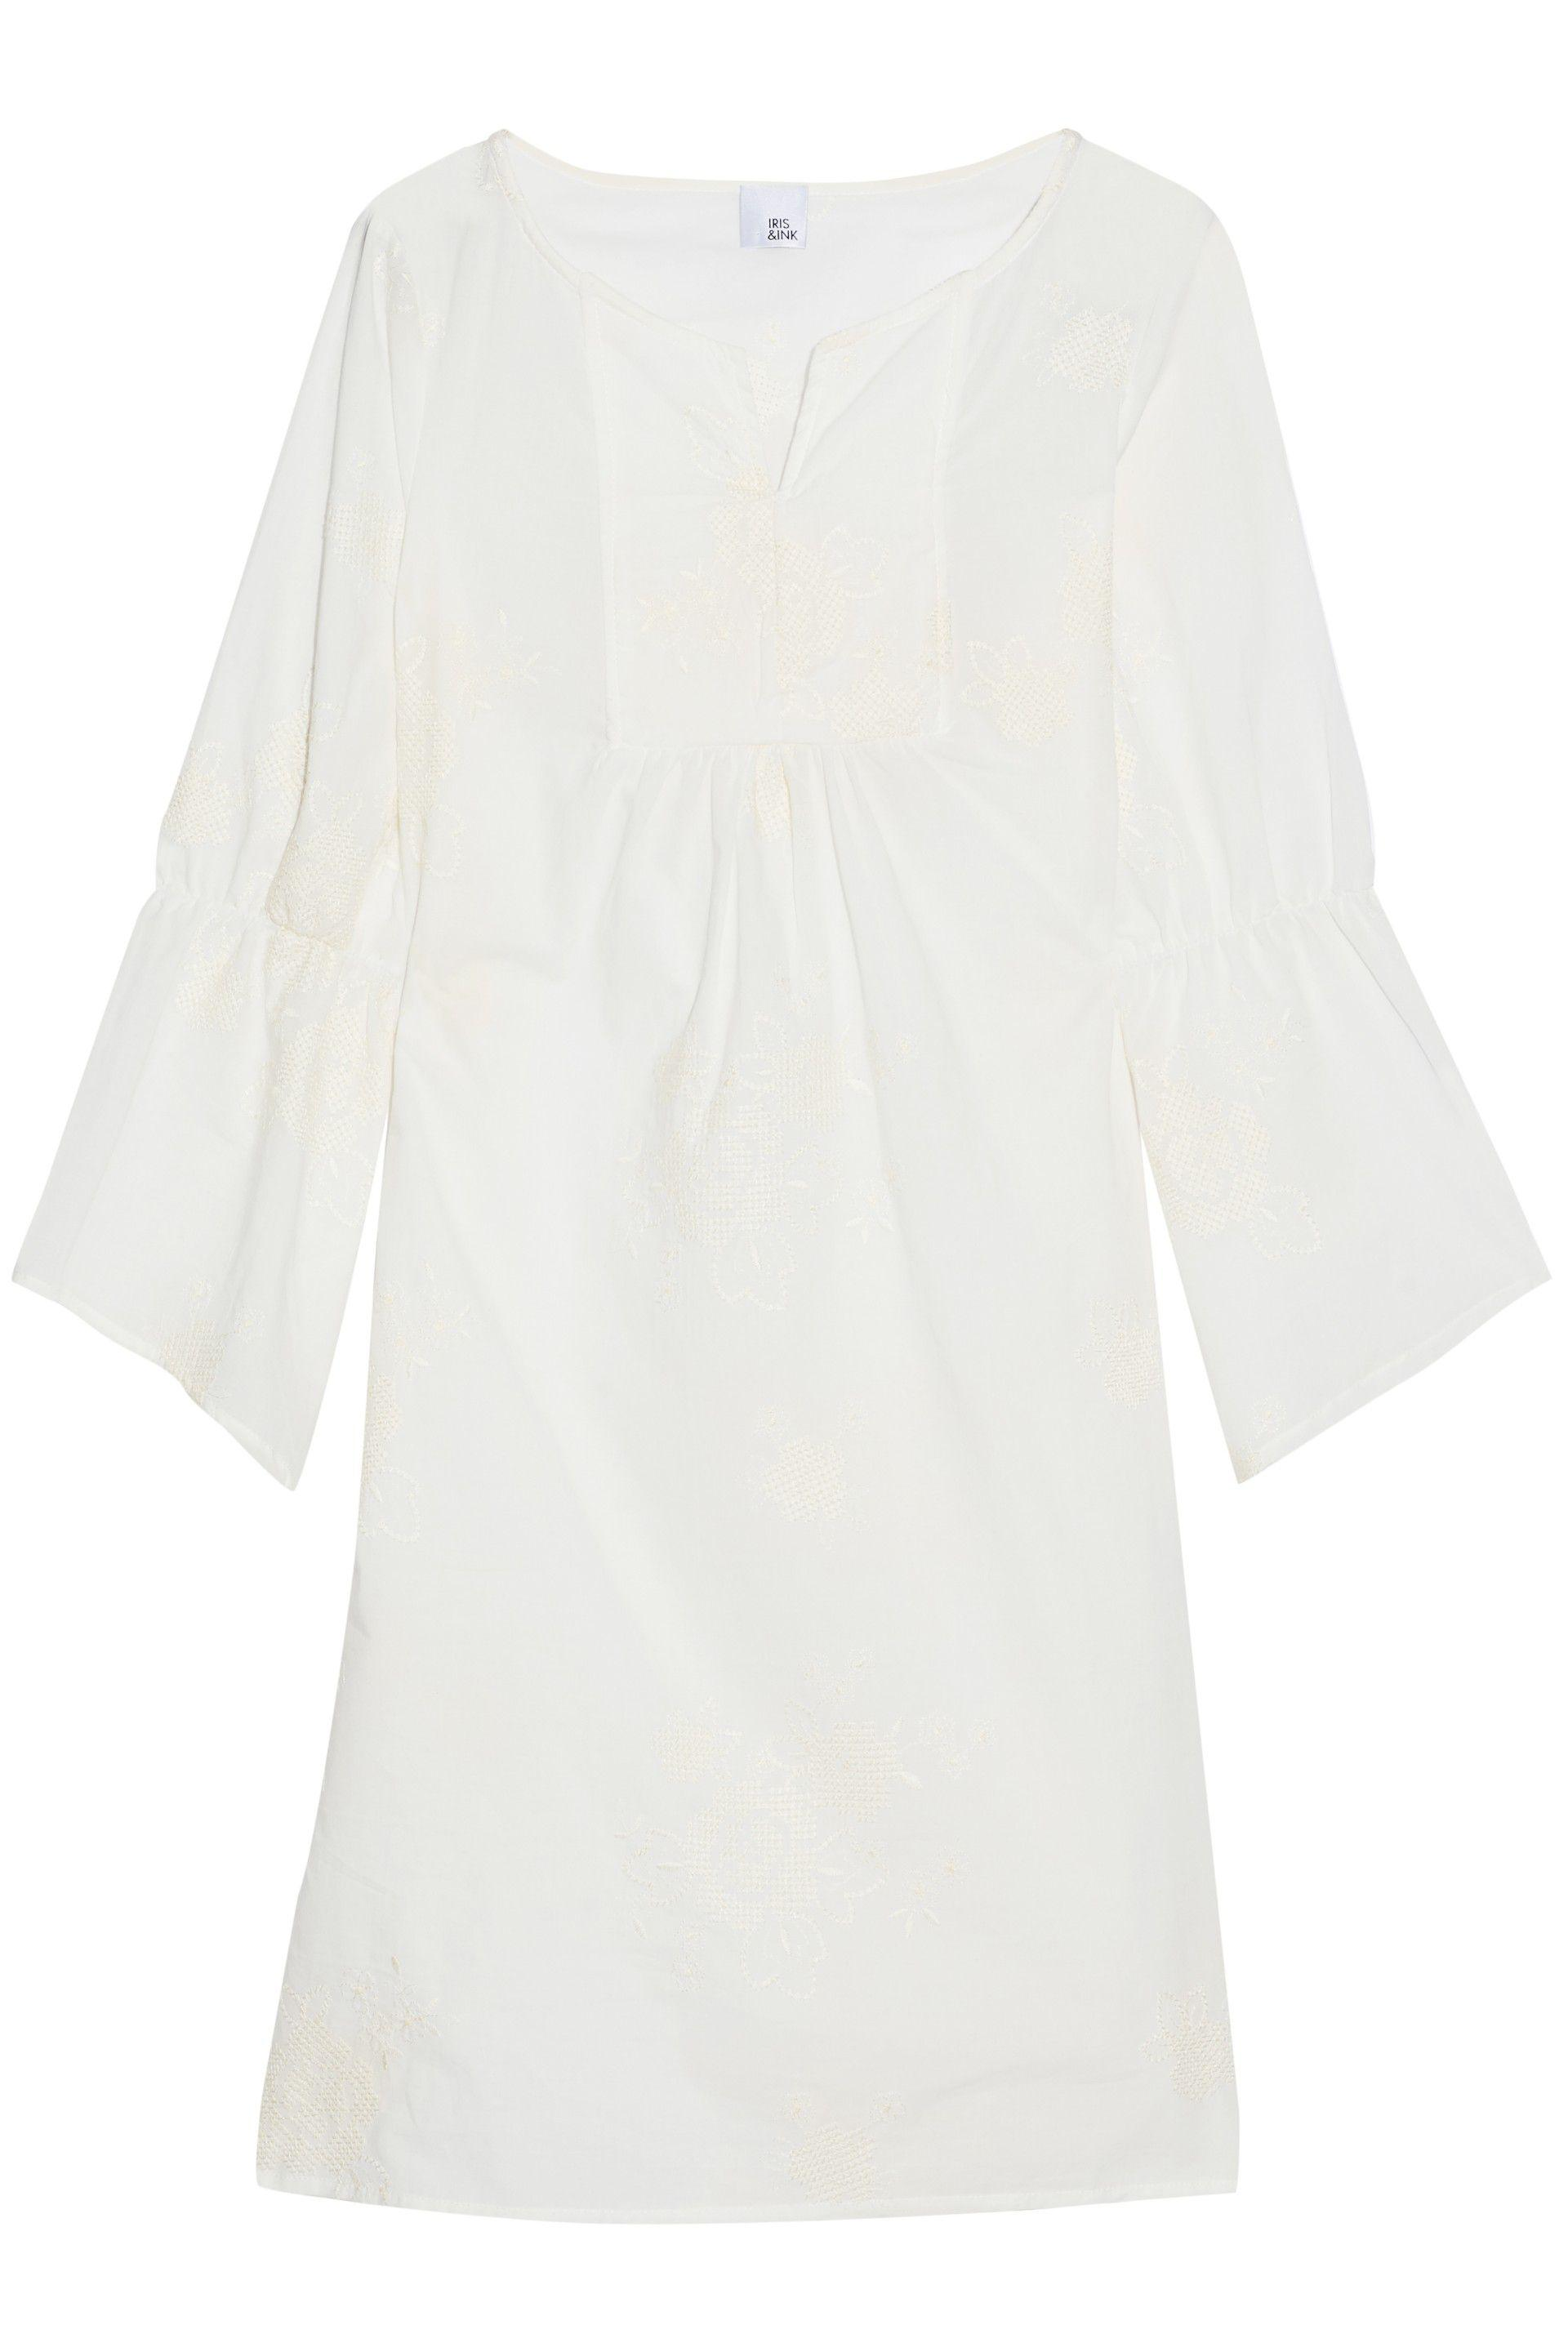 Iris & Ink Woman Wallace Gathered Embroidered Cotton-gauze Coverup Ivory Size 4 IRIS & INK Extremely Cheap Price Cheap 2018 New Get To Buy Cheap Online New rnKfn